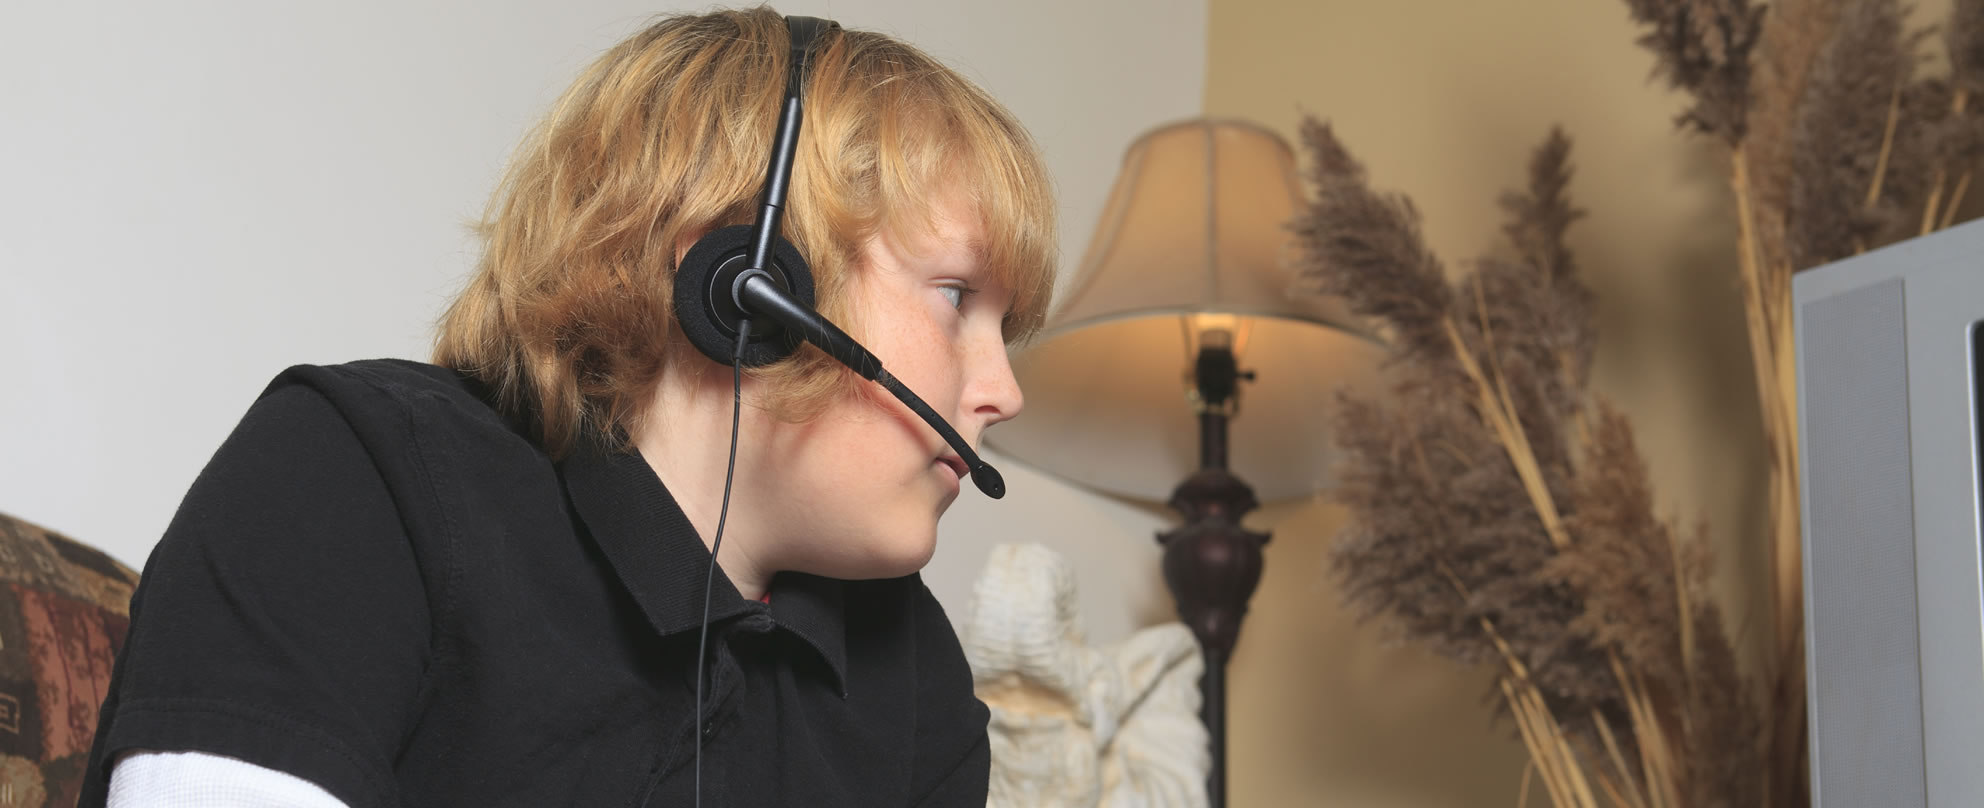 Teenage boy sitting wearing headset and facing screen engaged in online gaming